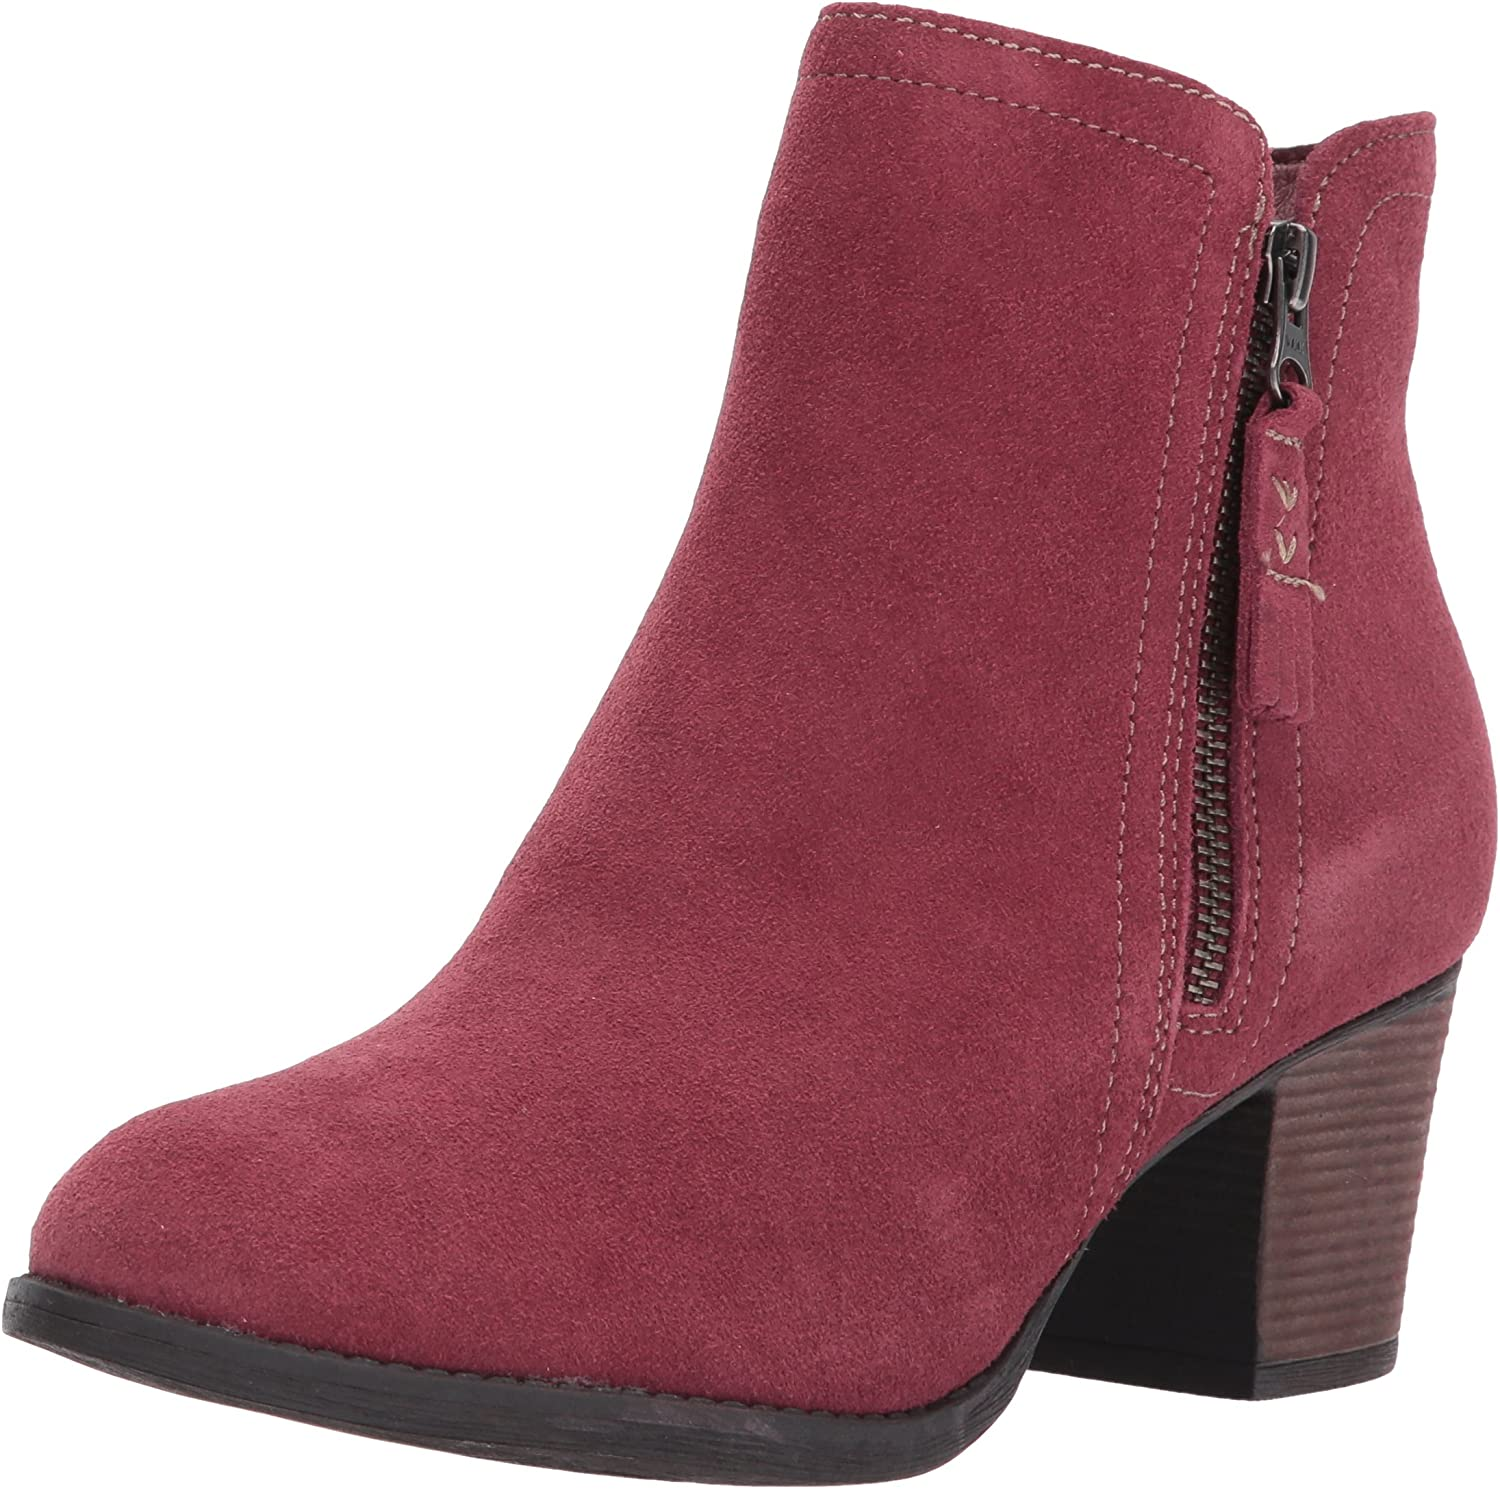 Skechers Womens Taxi - Accolade Ankle Bootie